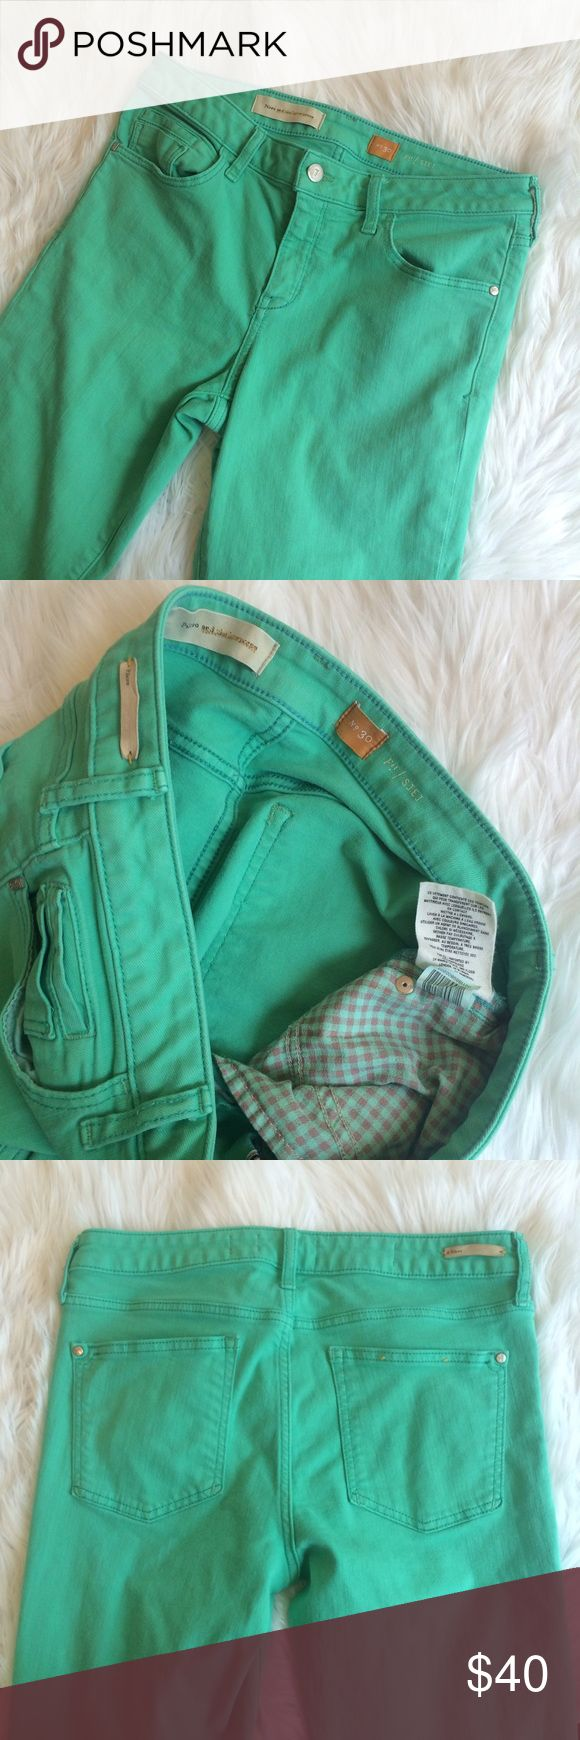 "💚💚 PILCRO AQUA JEANS Blue green color. EUC. 92% cotton 7% polyester 1% spandex. 15.75"" waist 34"" length 25"" inseam   **bundles save 10%** no trades/no modeling/no asking for lowest Anthropologie Jeans Skinny"